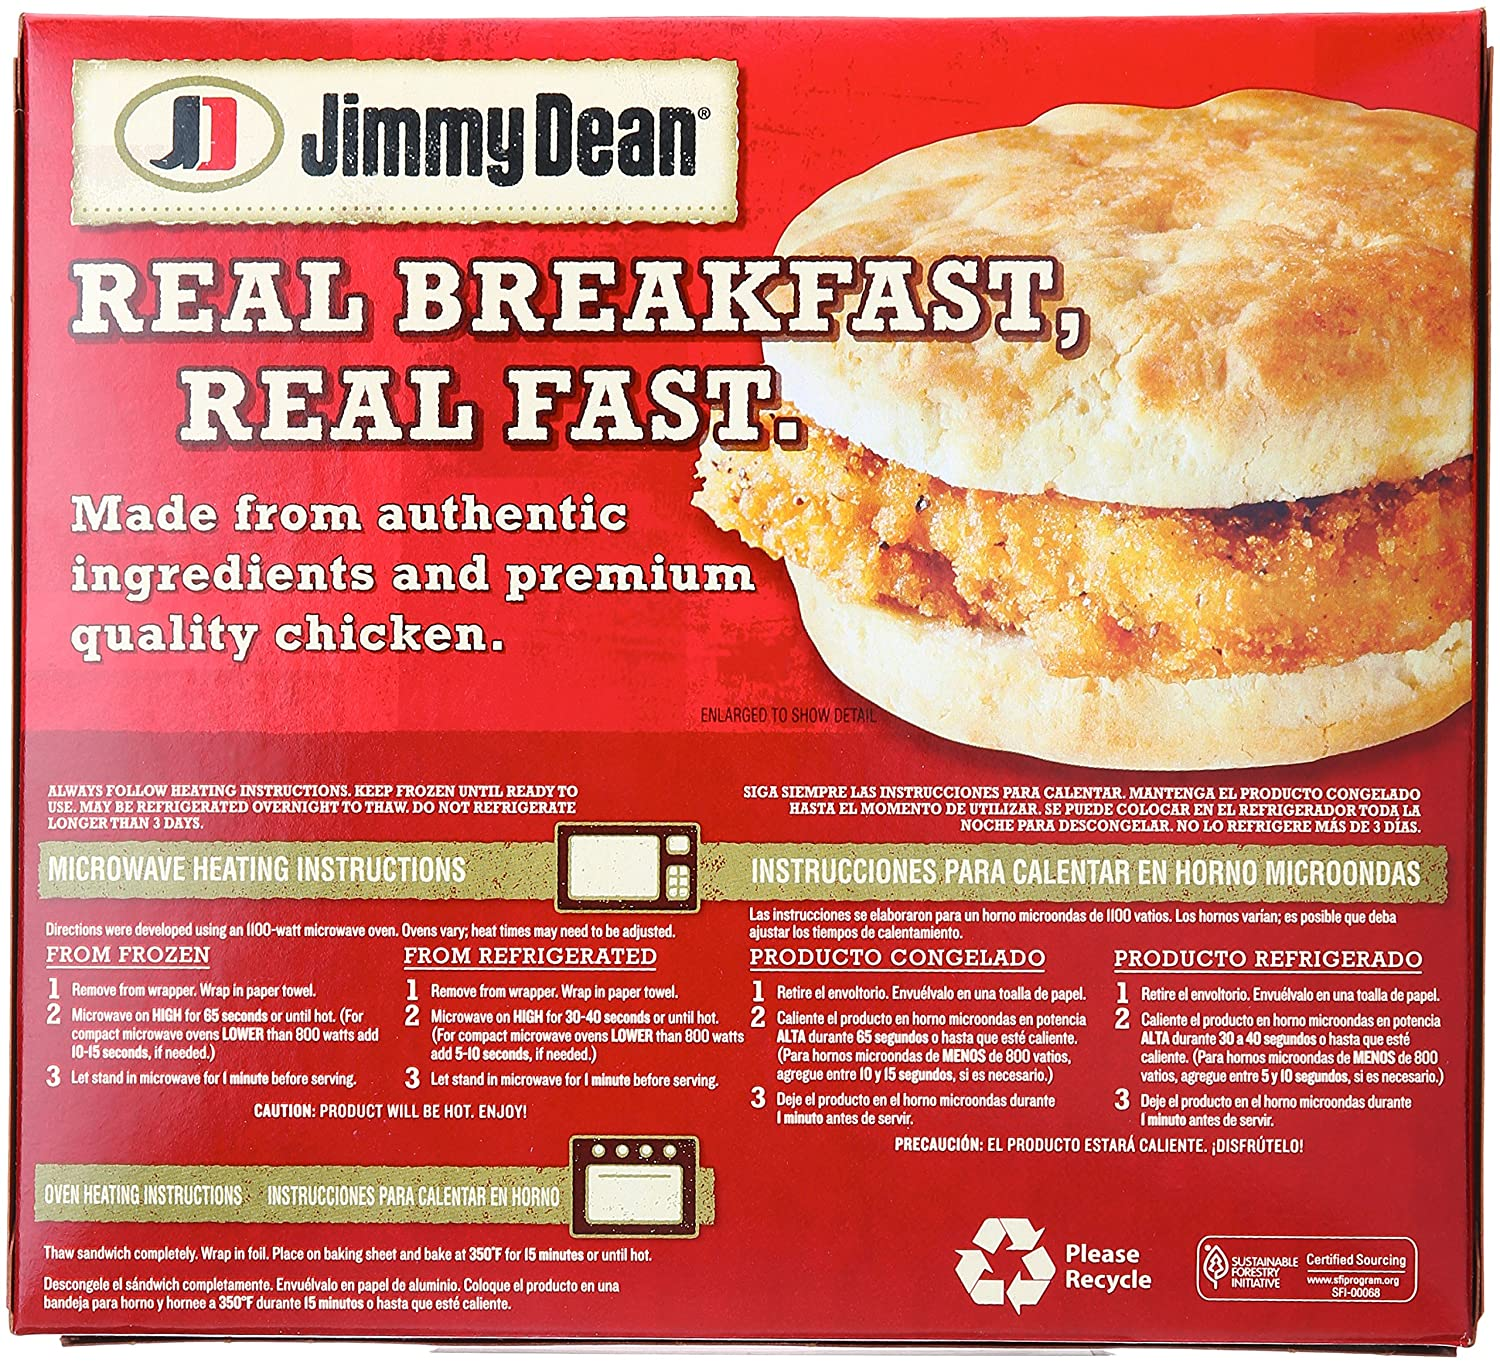 Jimmy Dean, Southern Style Chicken Biscuit Sandwiches, 4 ct (frozen): Amazon.com: Grocery & Gourmet Food